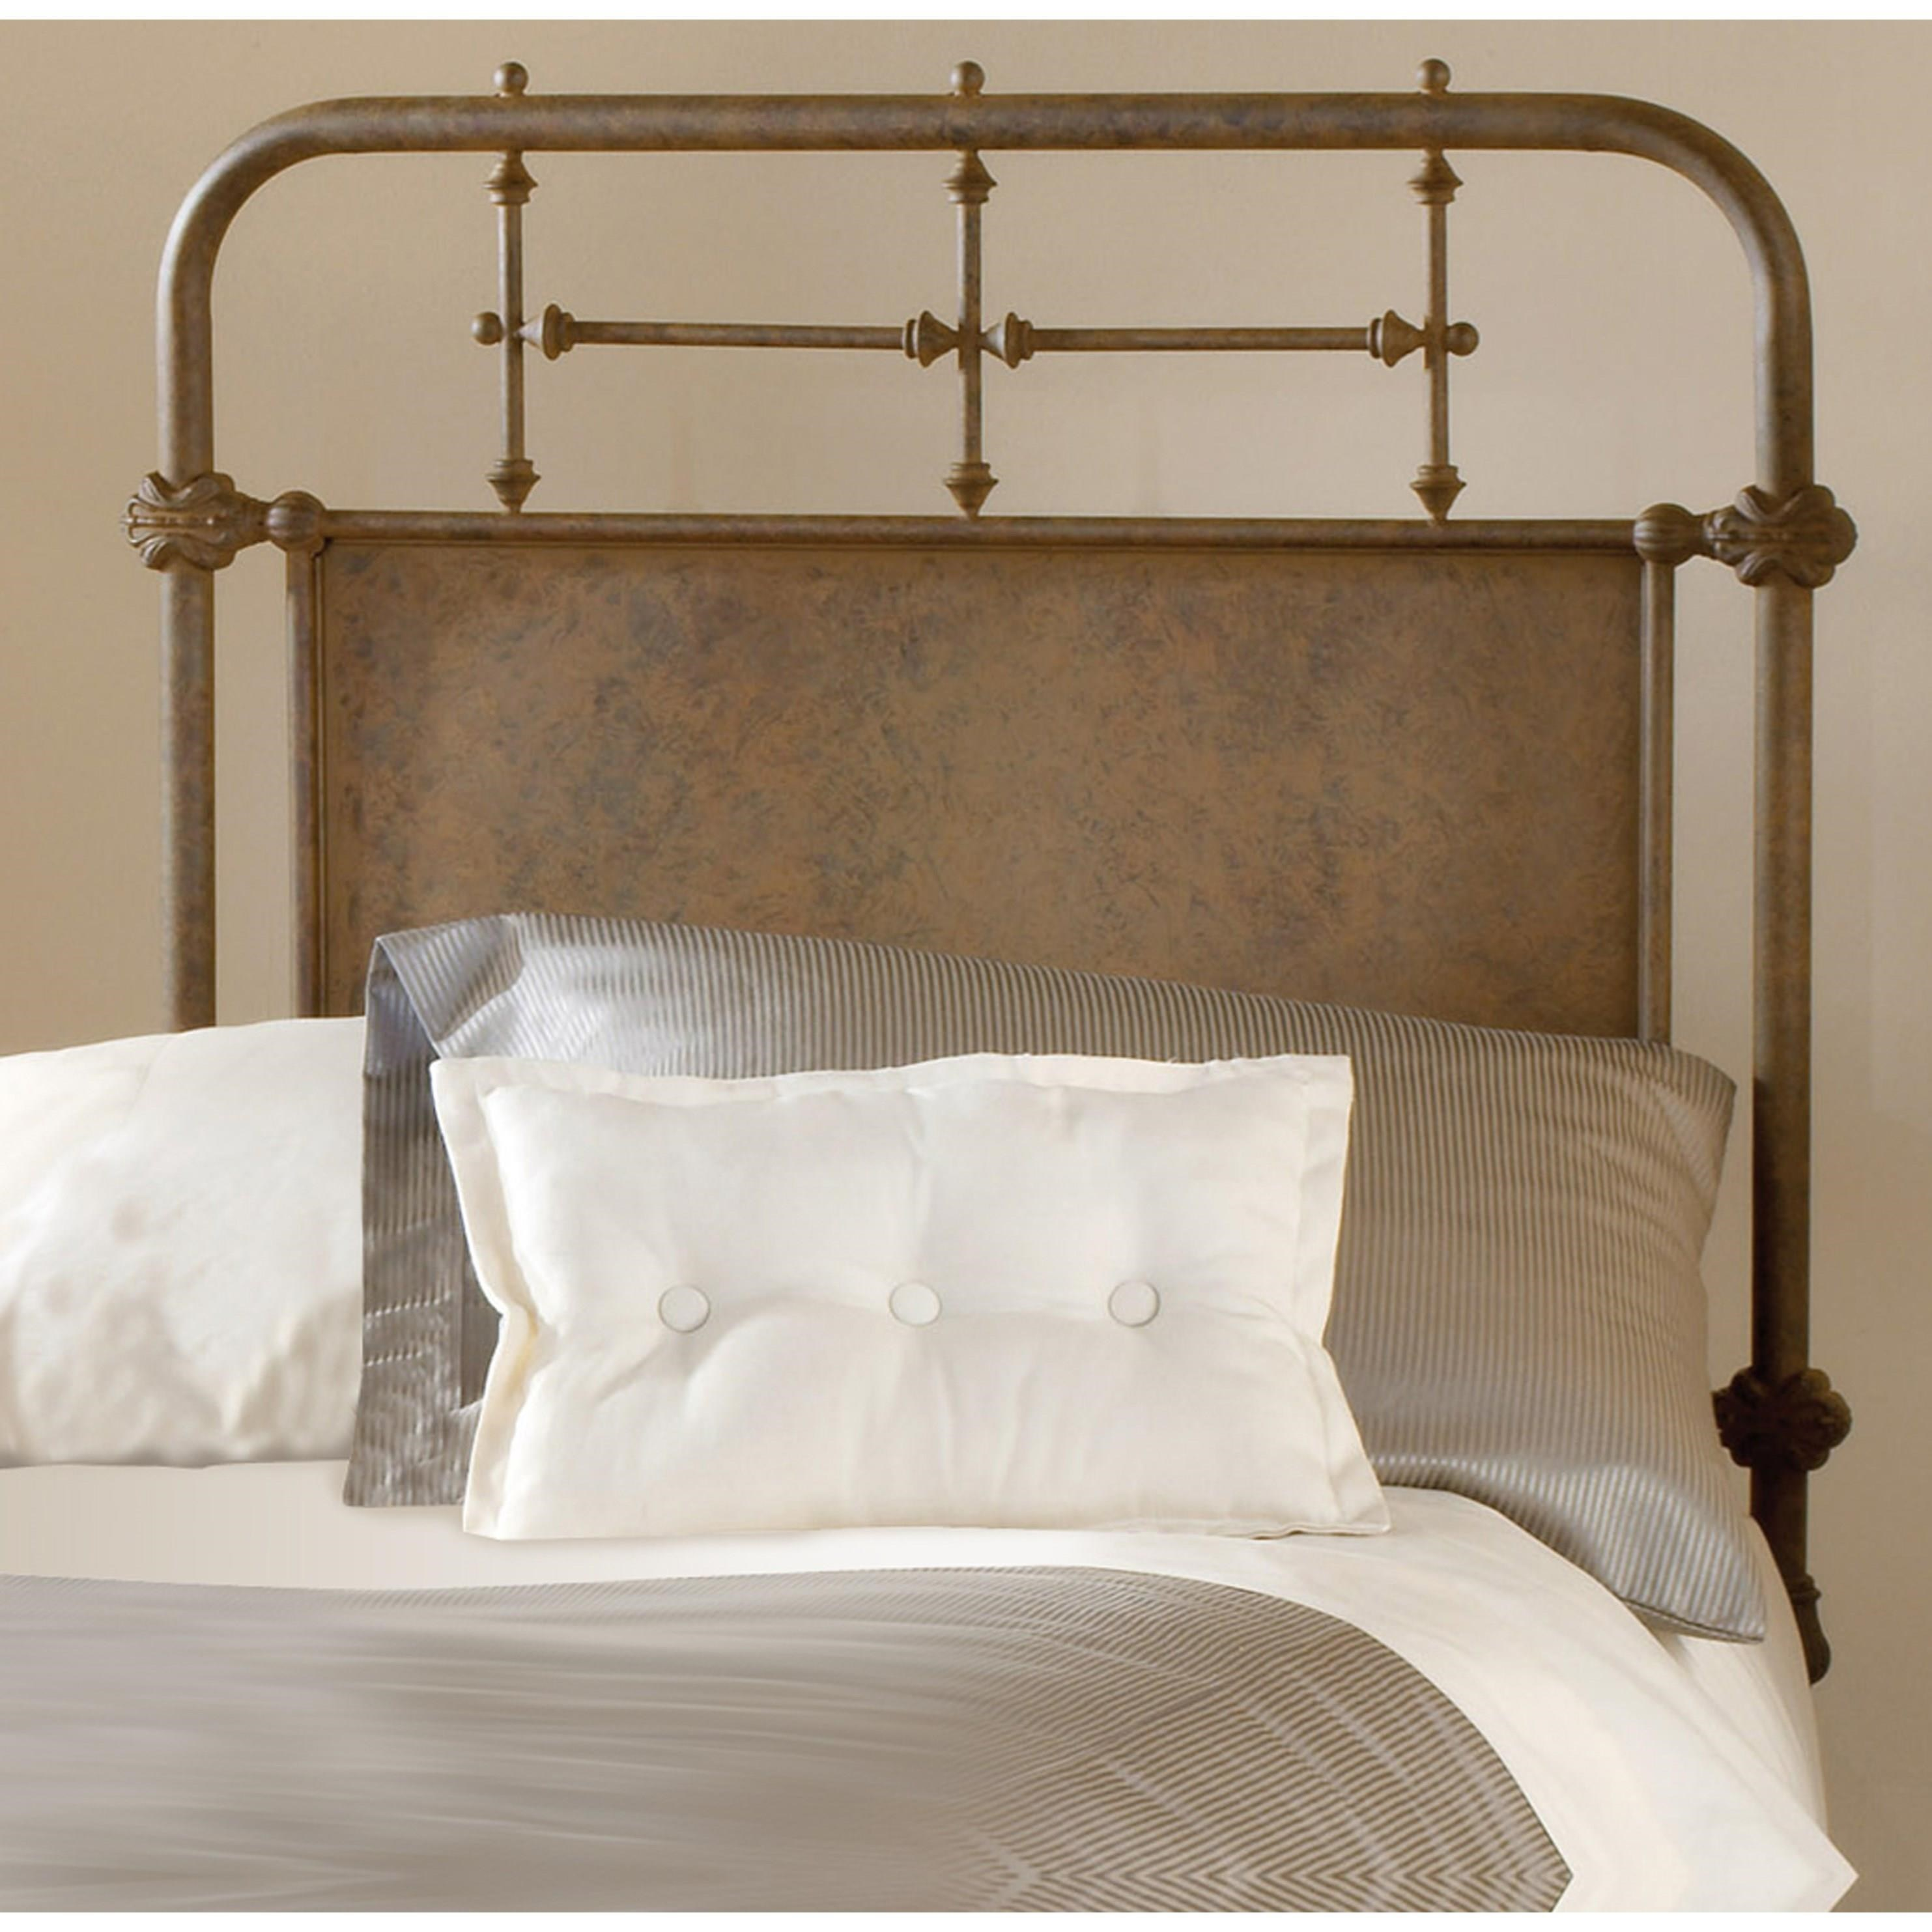 Hillsdale Metal Beds Twin Kensington Headboard Set - Item Number: 1502HTWR